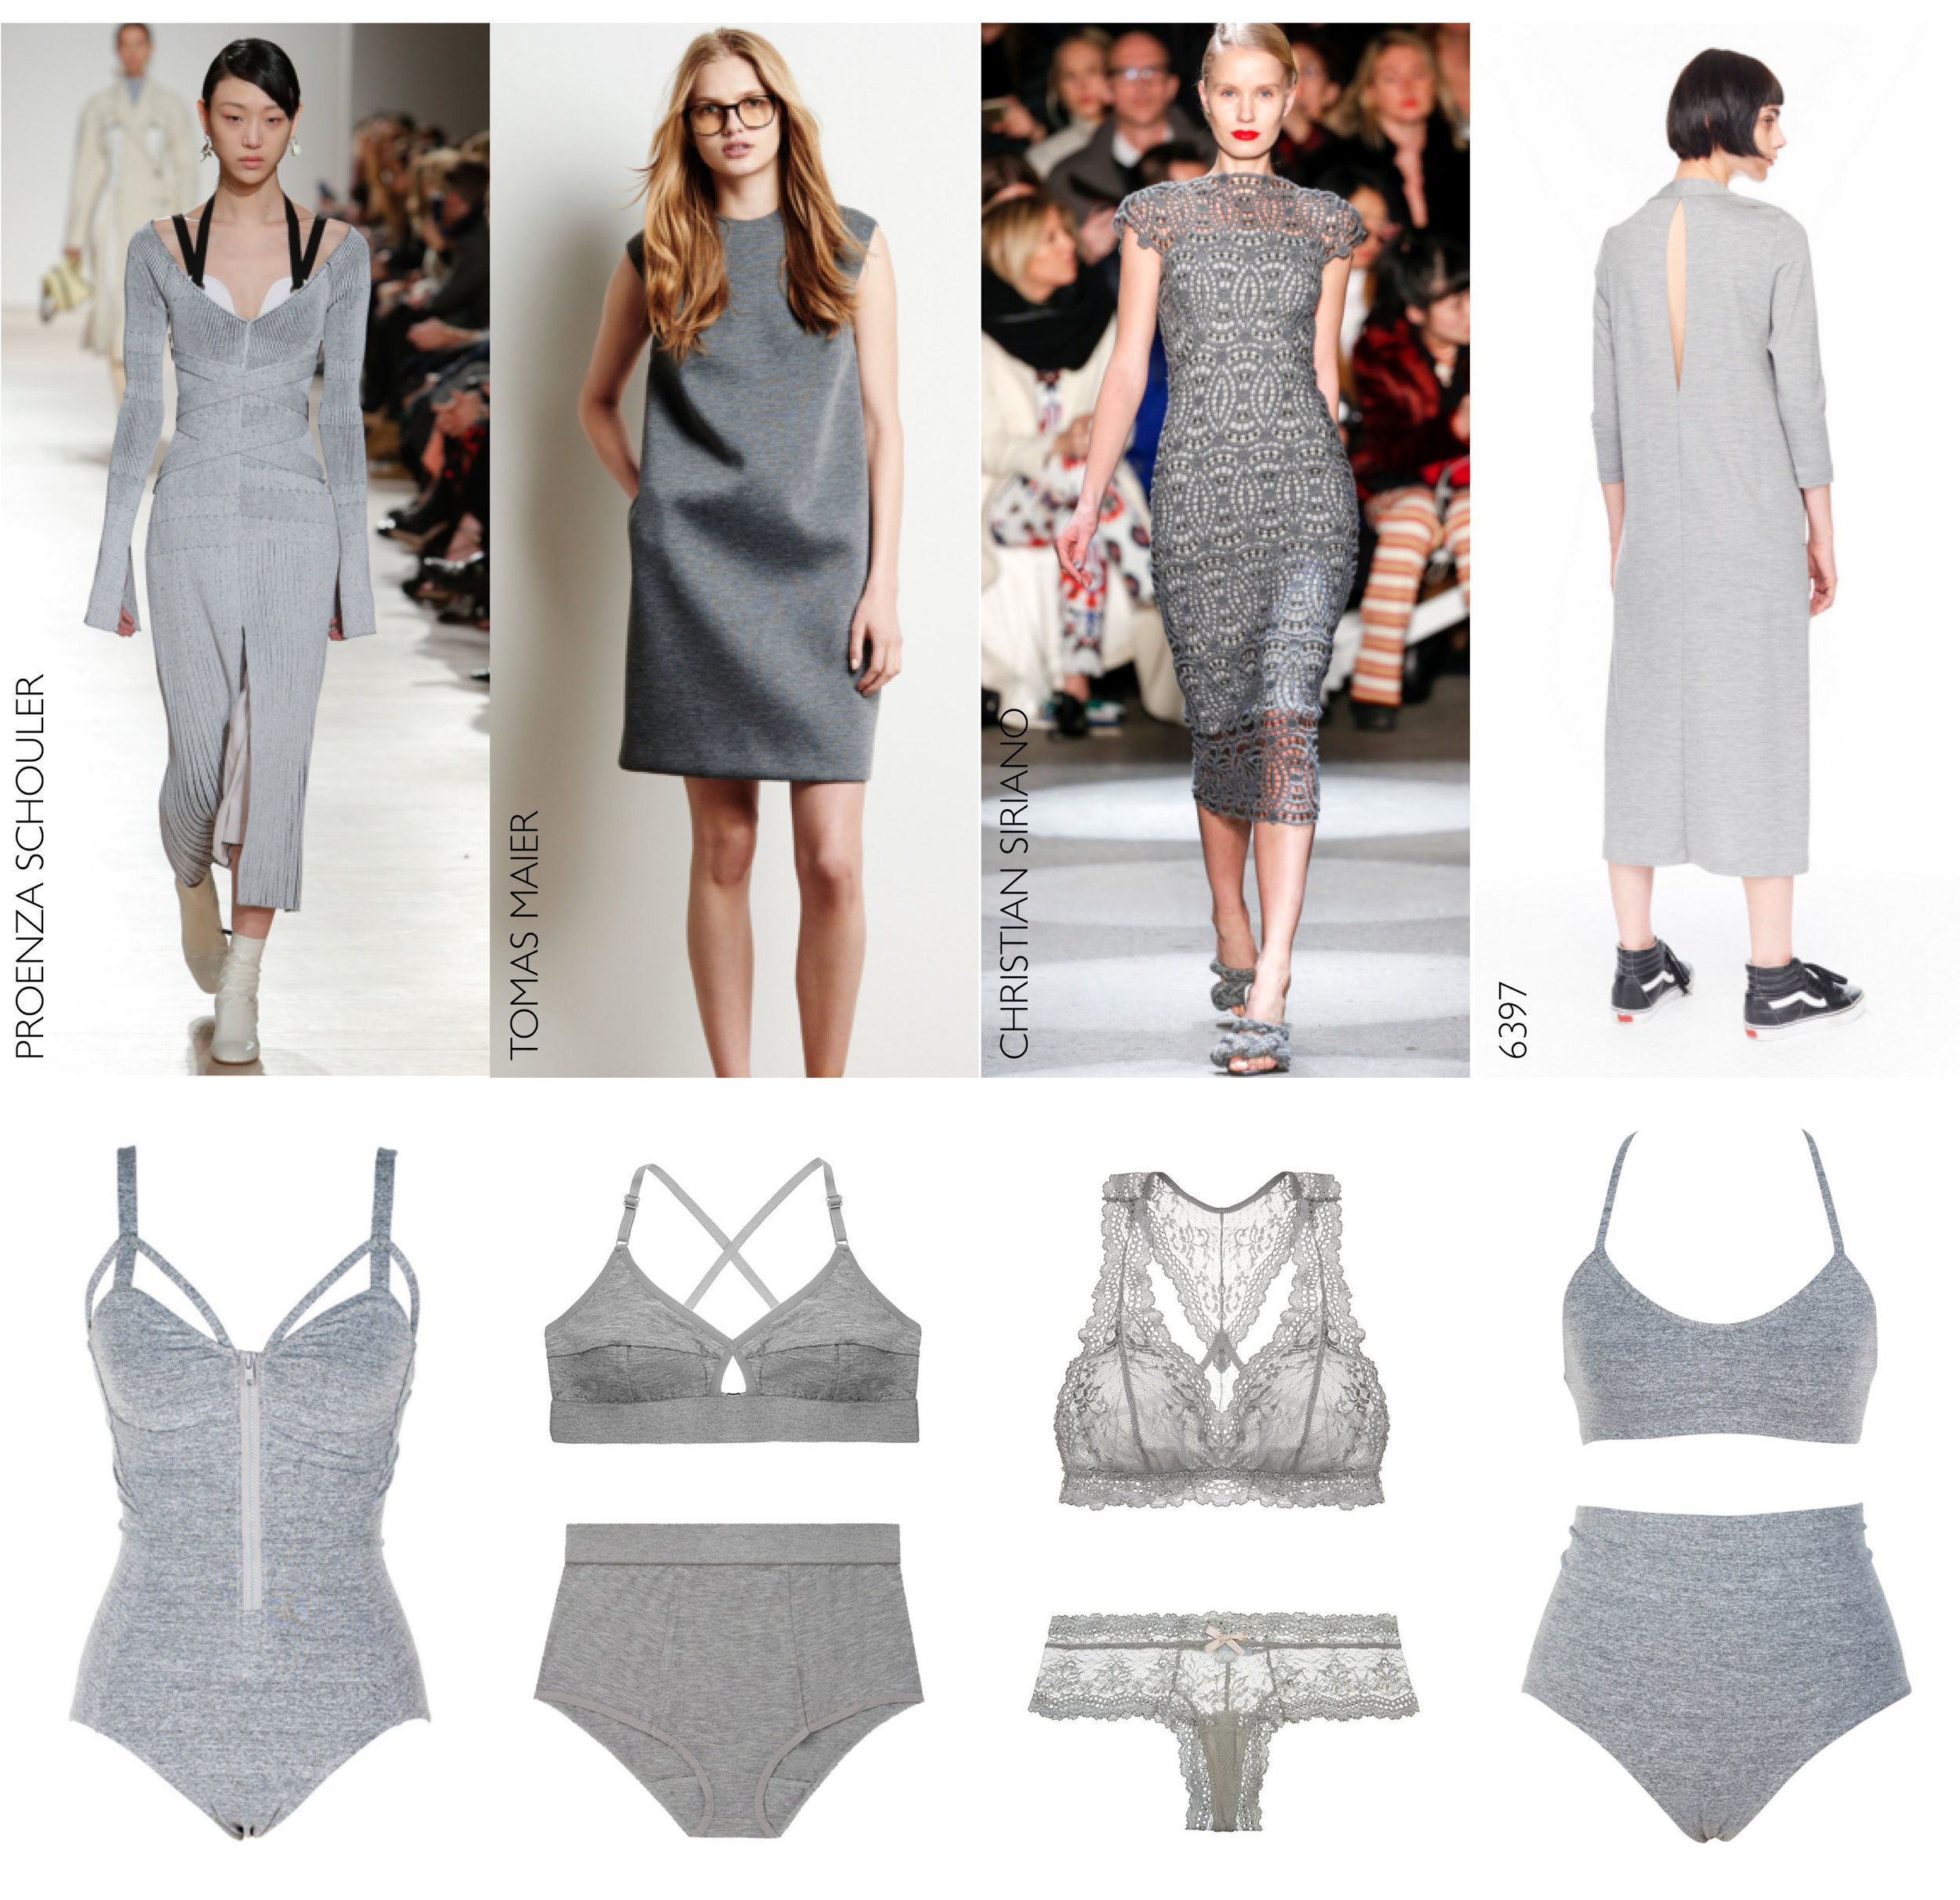 NYFW-GREY-Lingerie-La-femme-edit-underwear-undergarments-AW16-Ready-to-wear-trends-05